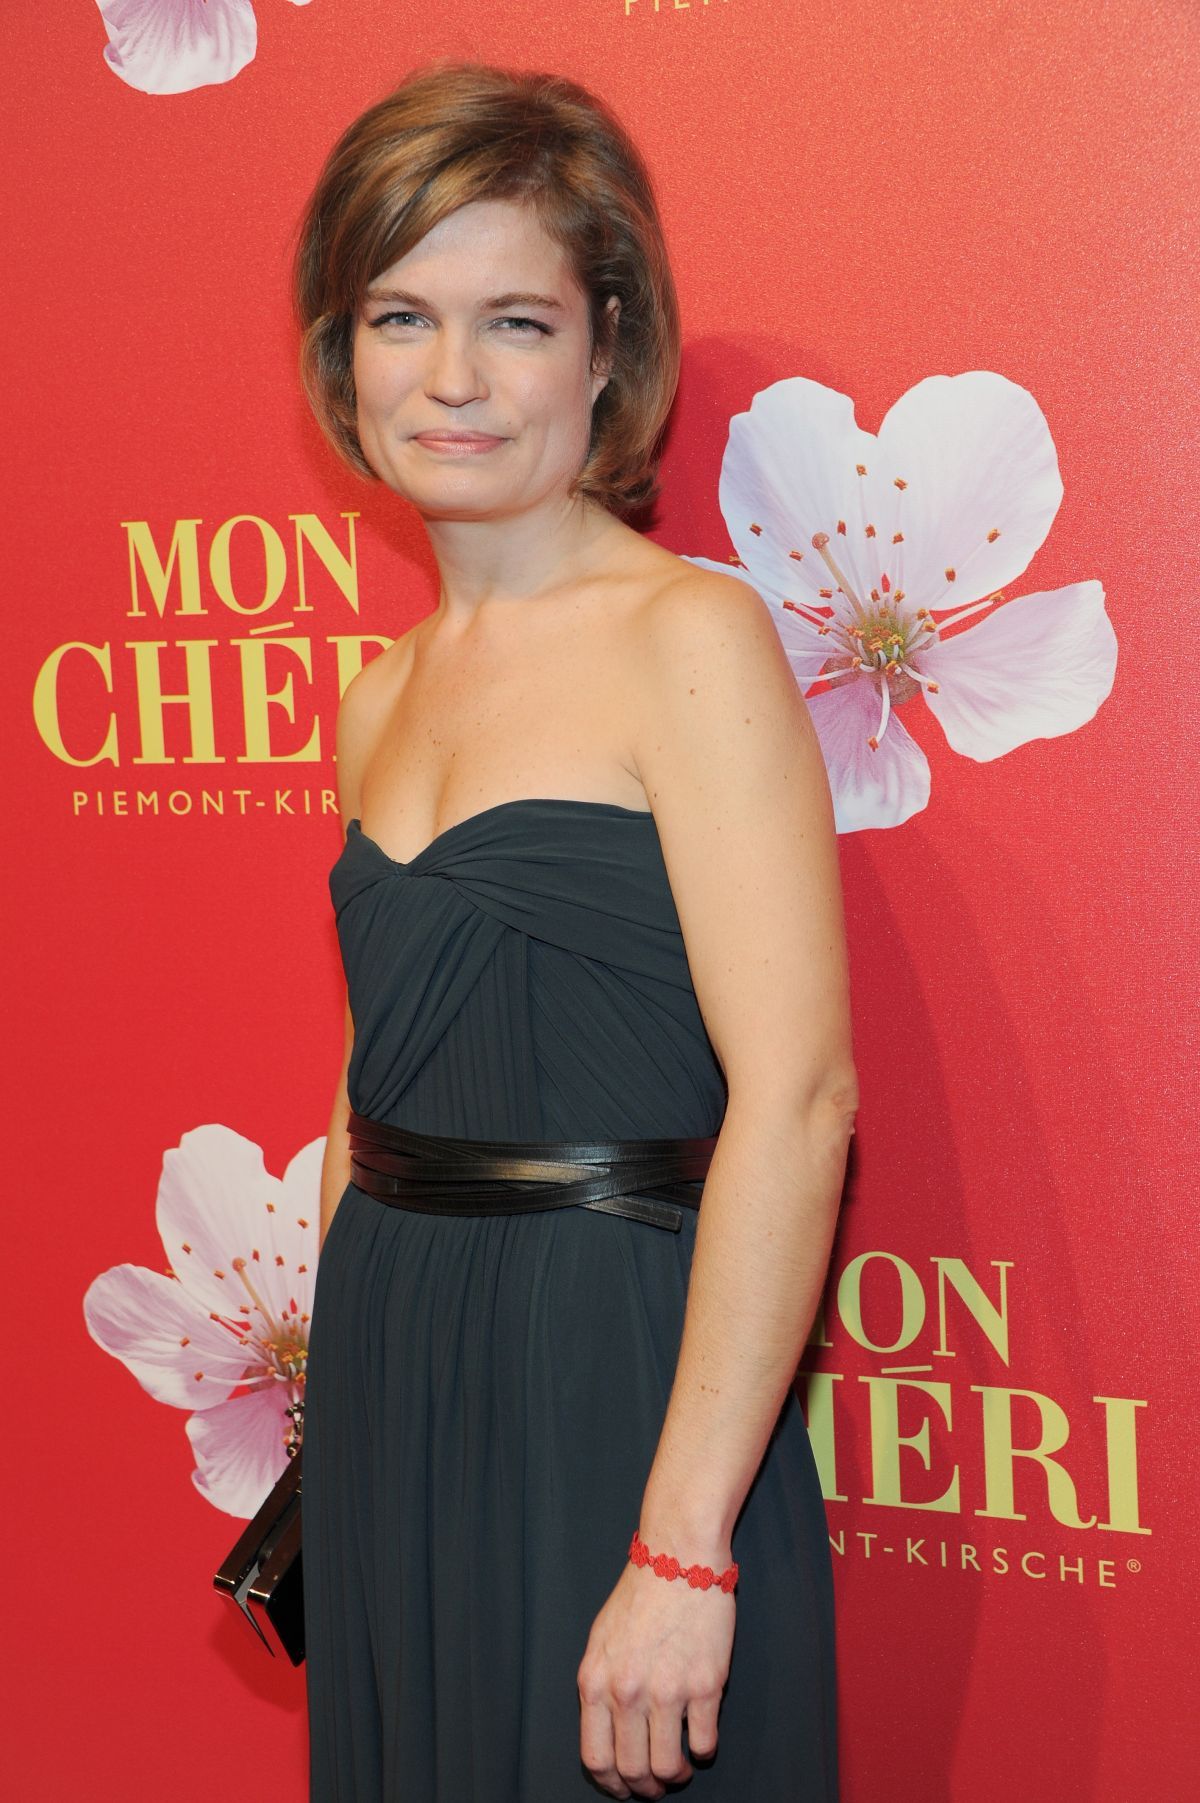 SARAH BIASINI at Mon Cherie Barbara Tag 2015 in Munich 12/04/2015